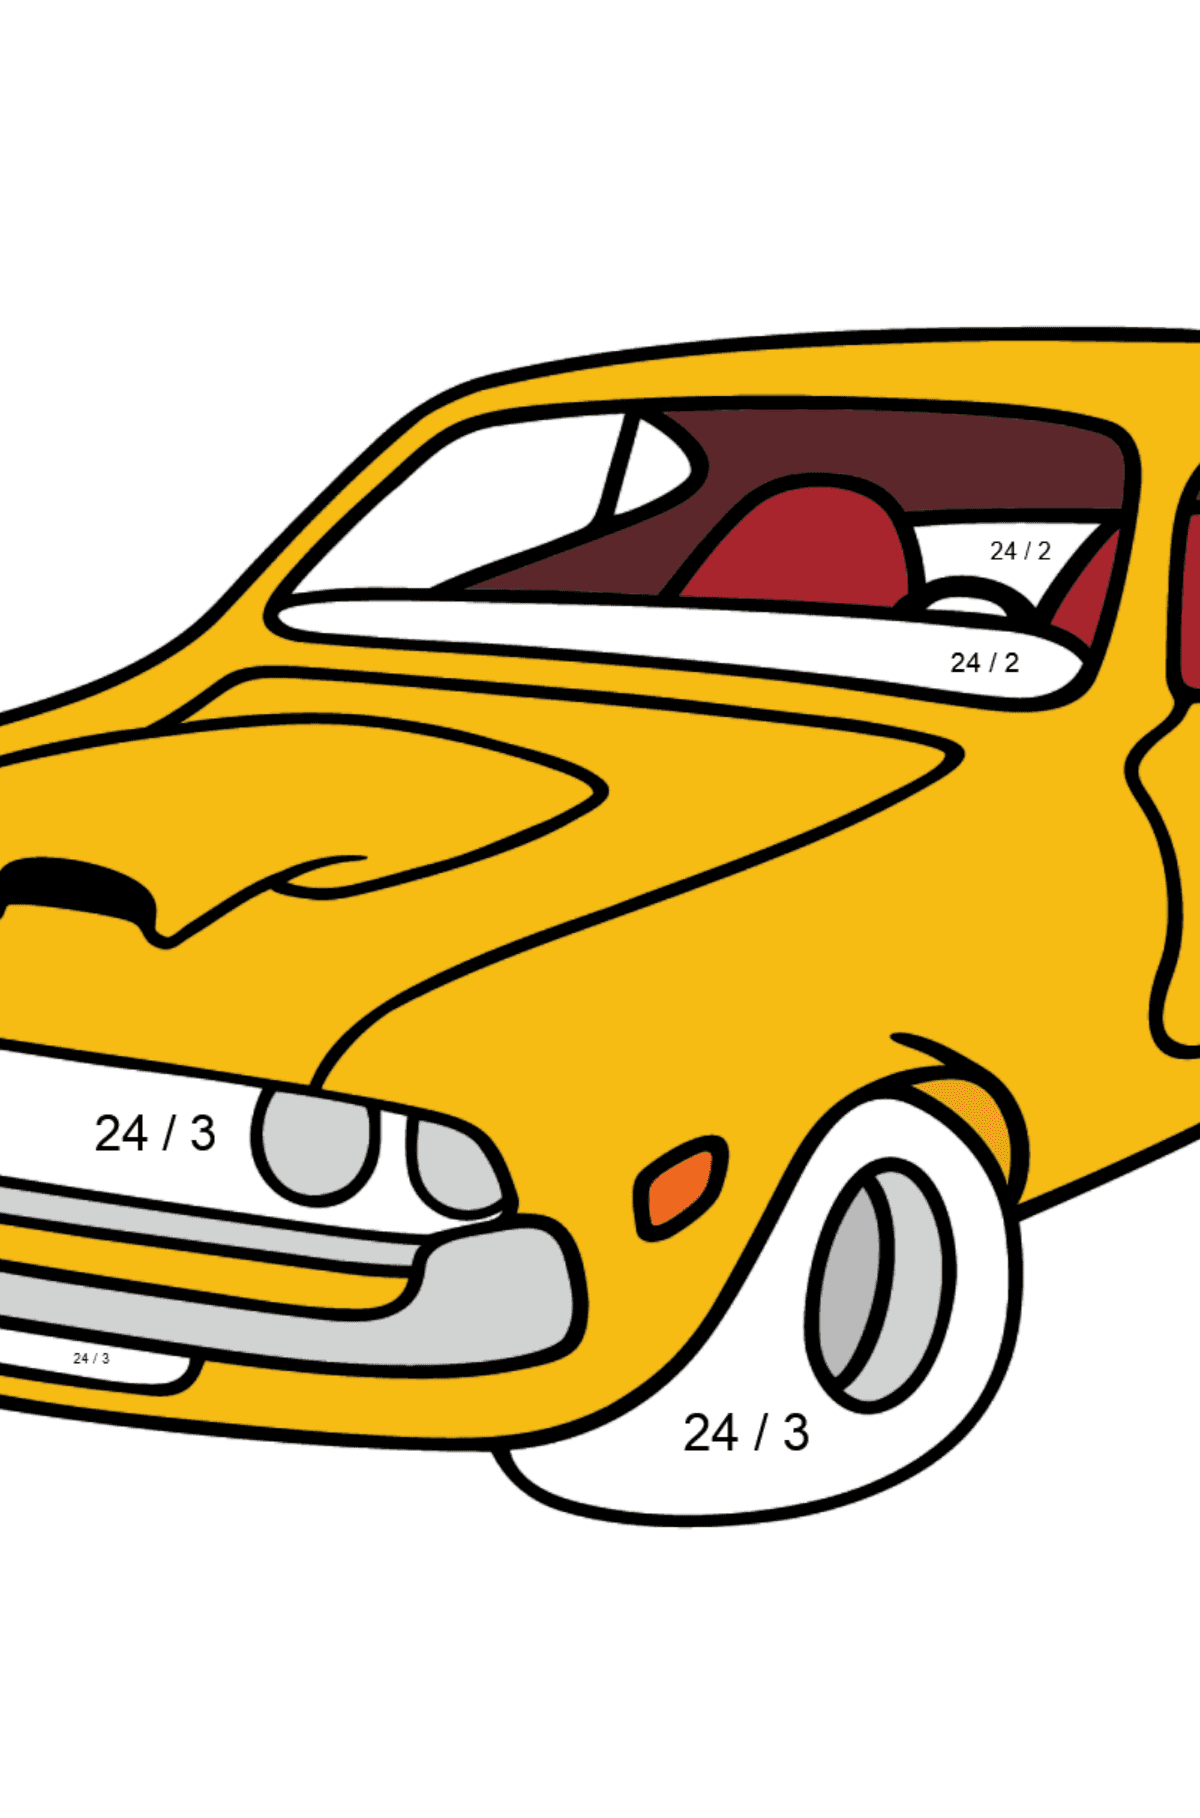 Chevrolet-Chevy Sports Car coloring page - Math Coloring - Division for Kids